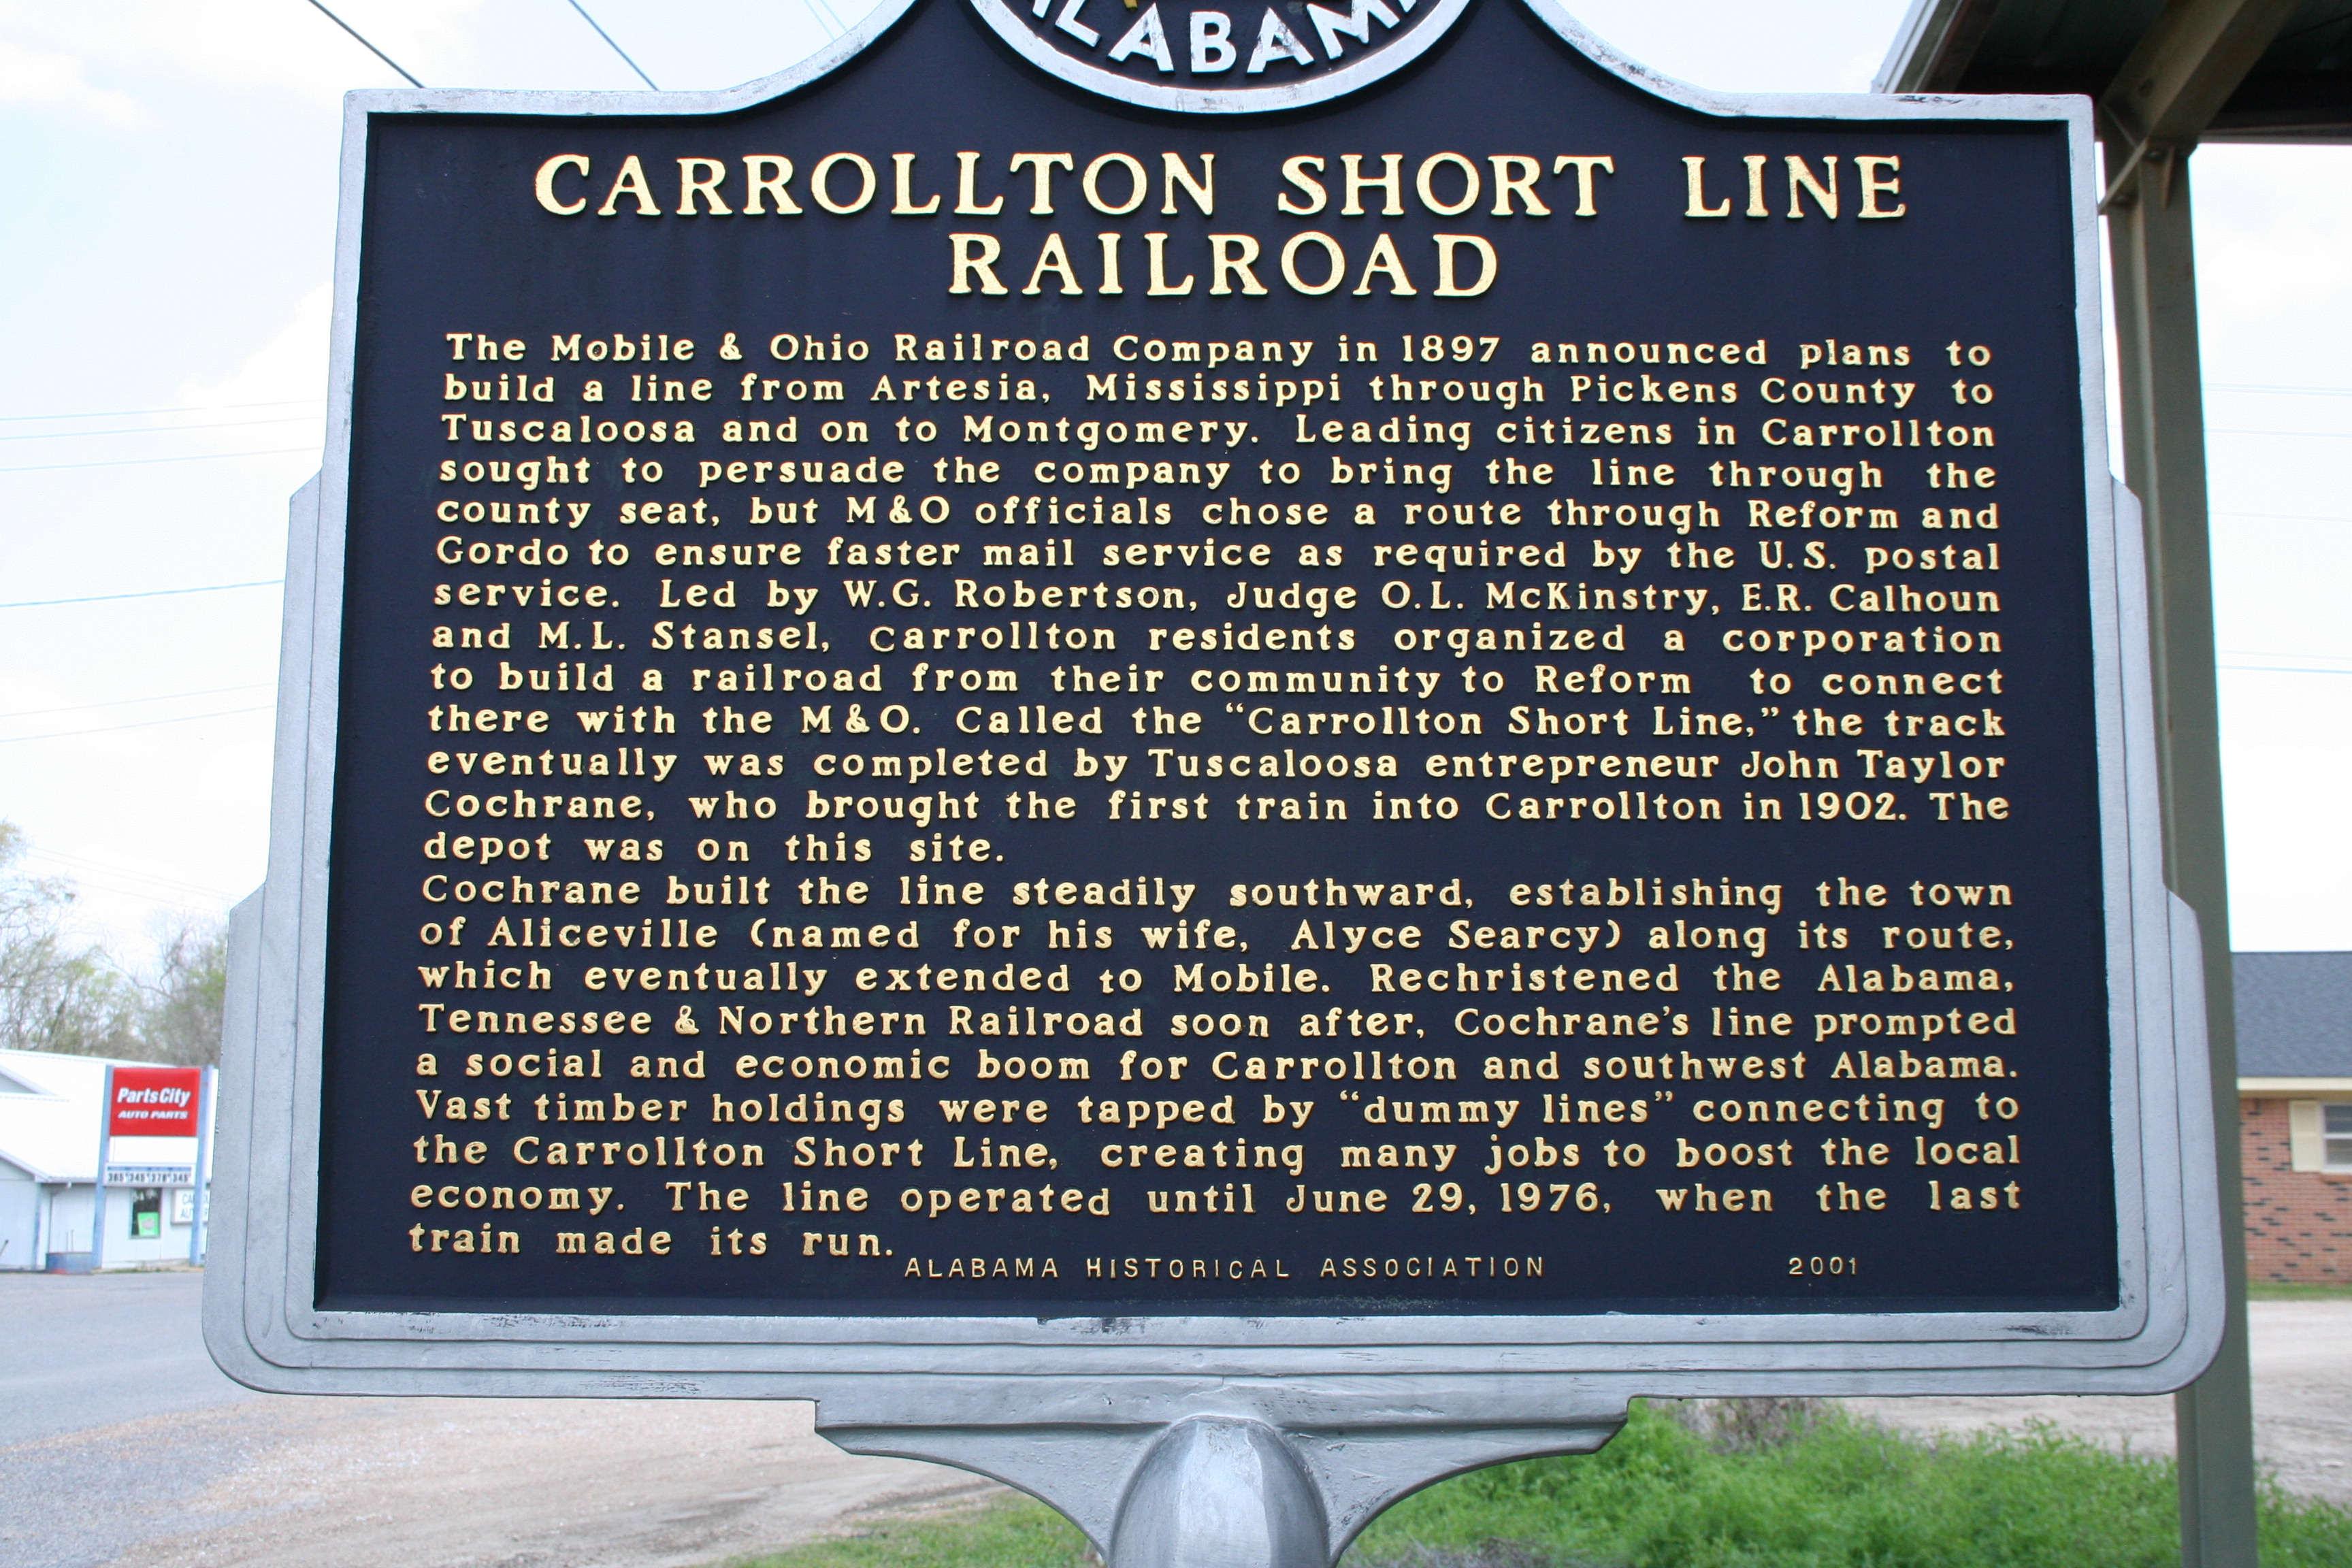 Historical marker in Carrollton, AL